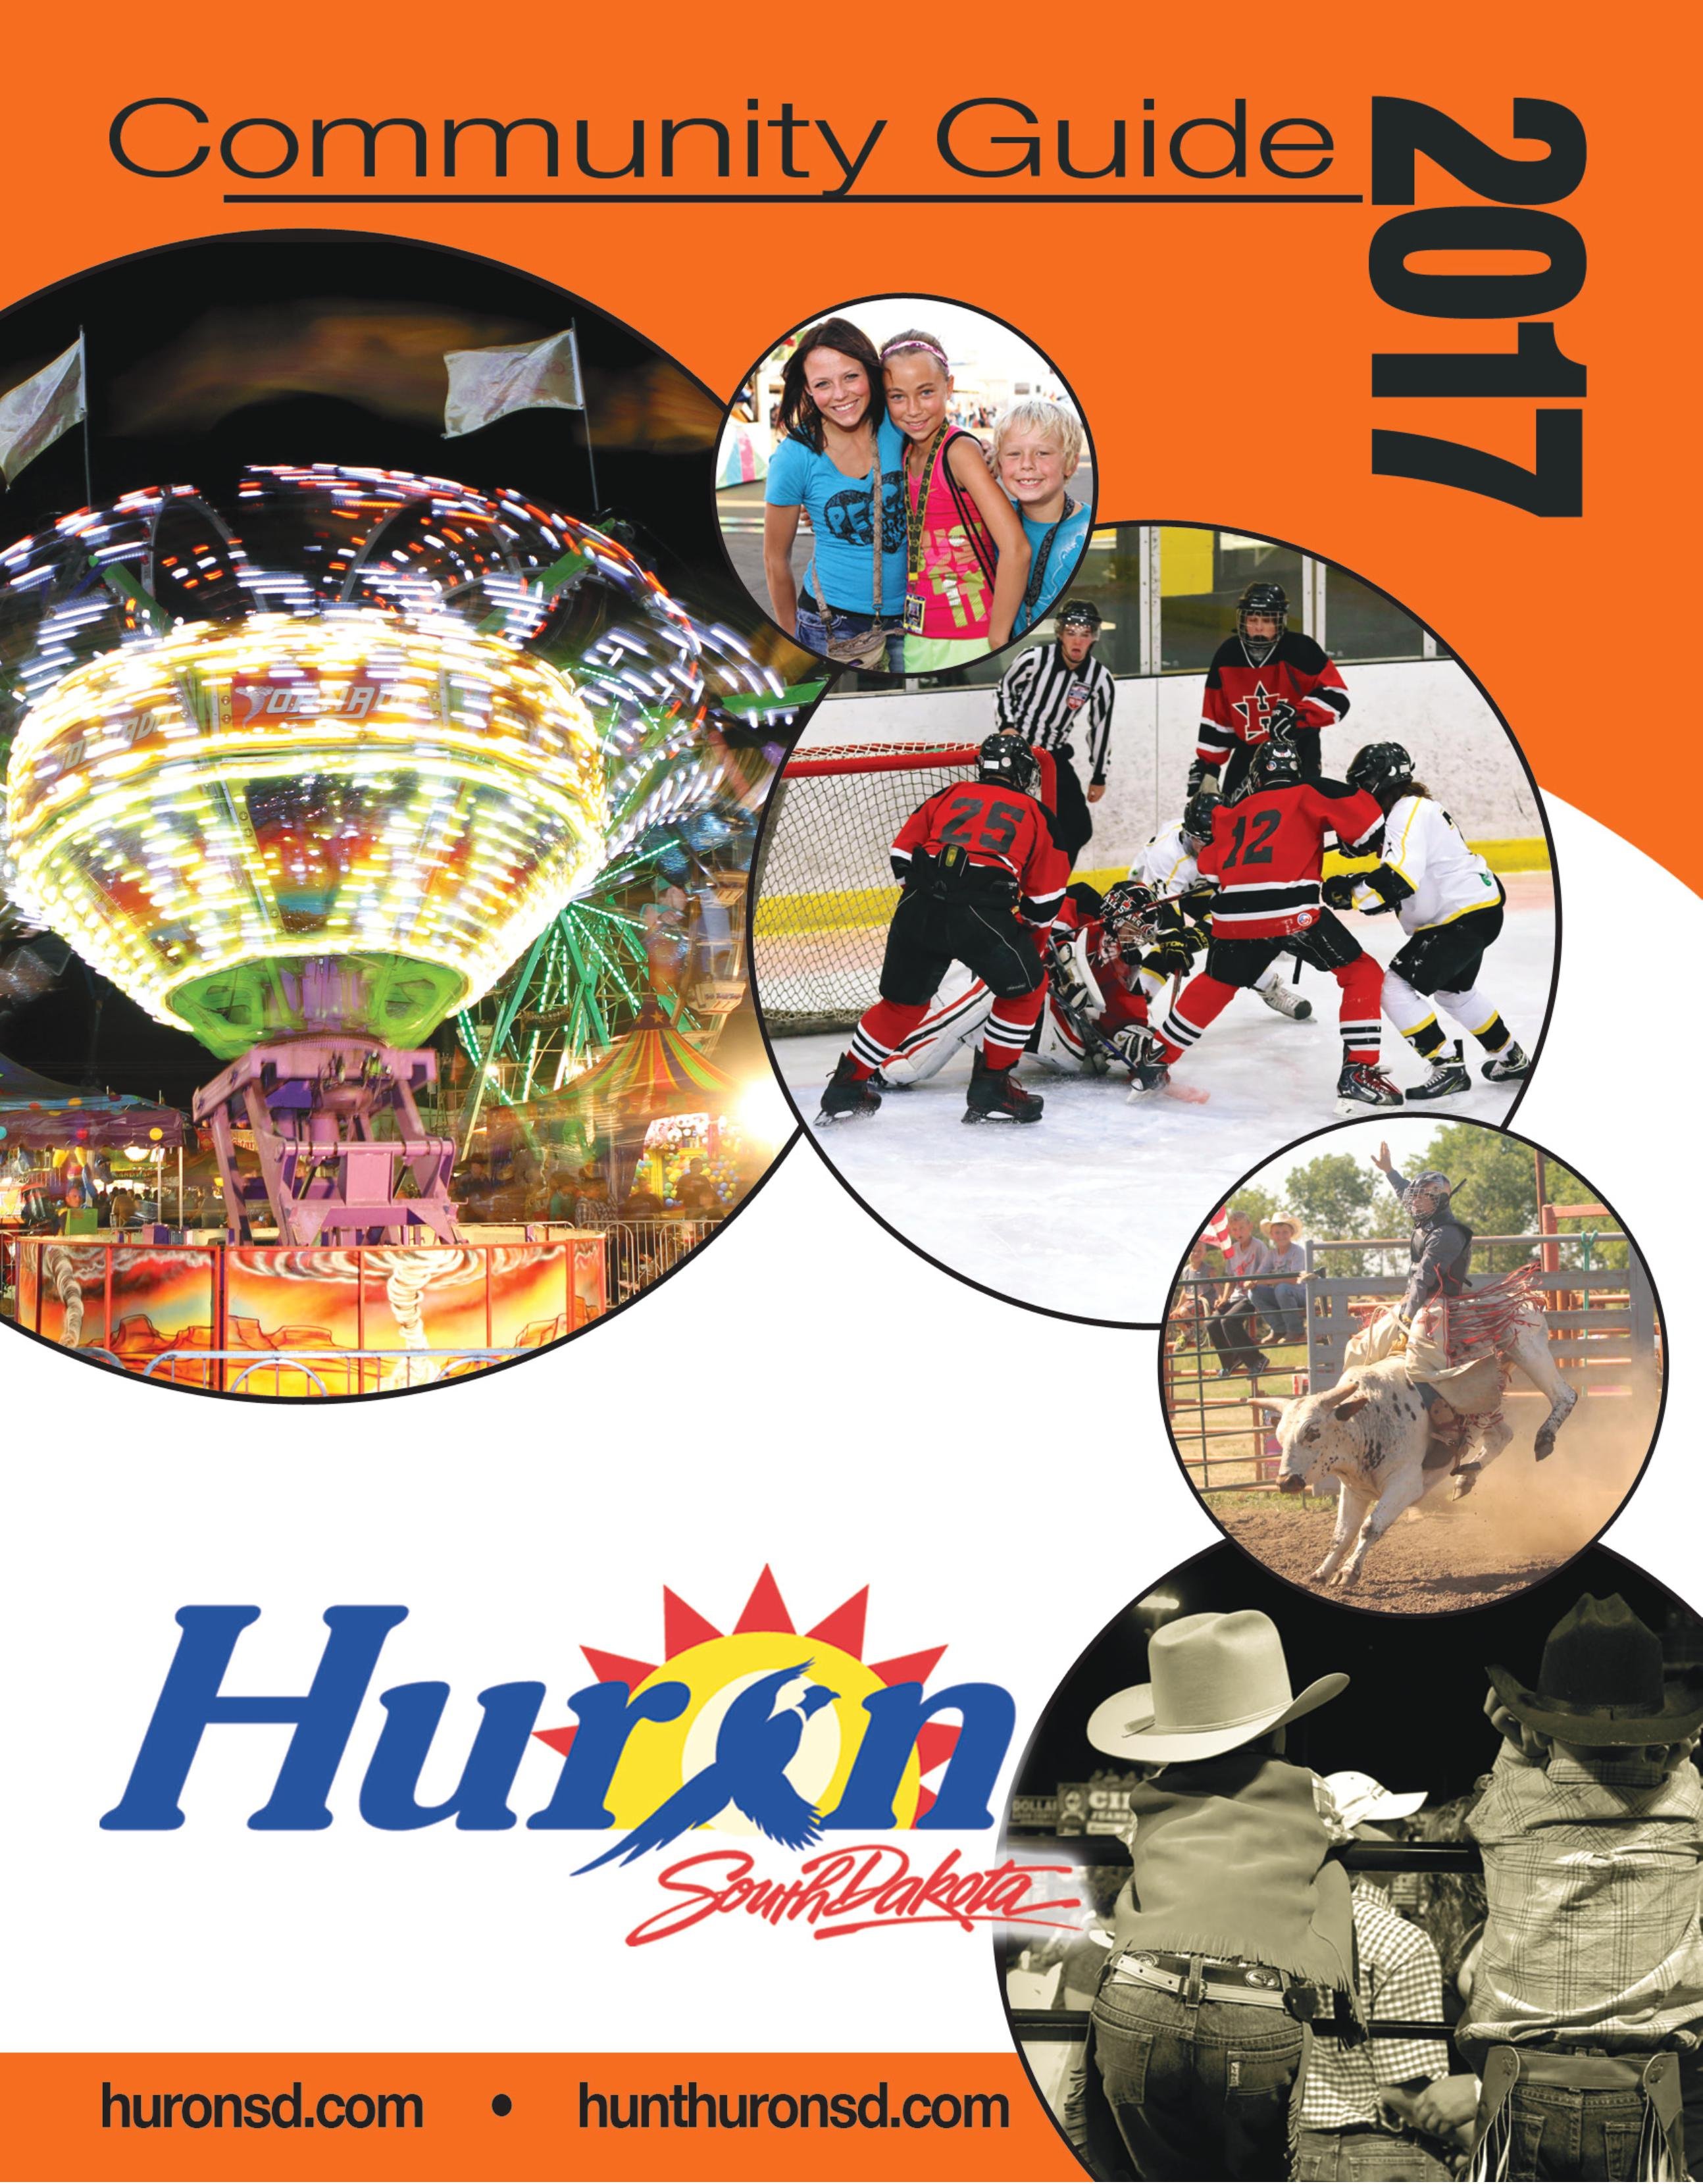 A picture of the cover of the 2016 Huron, SD Community Guide